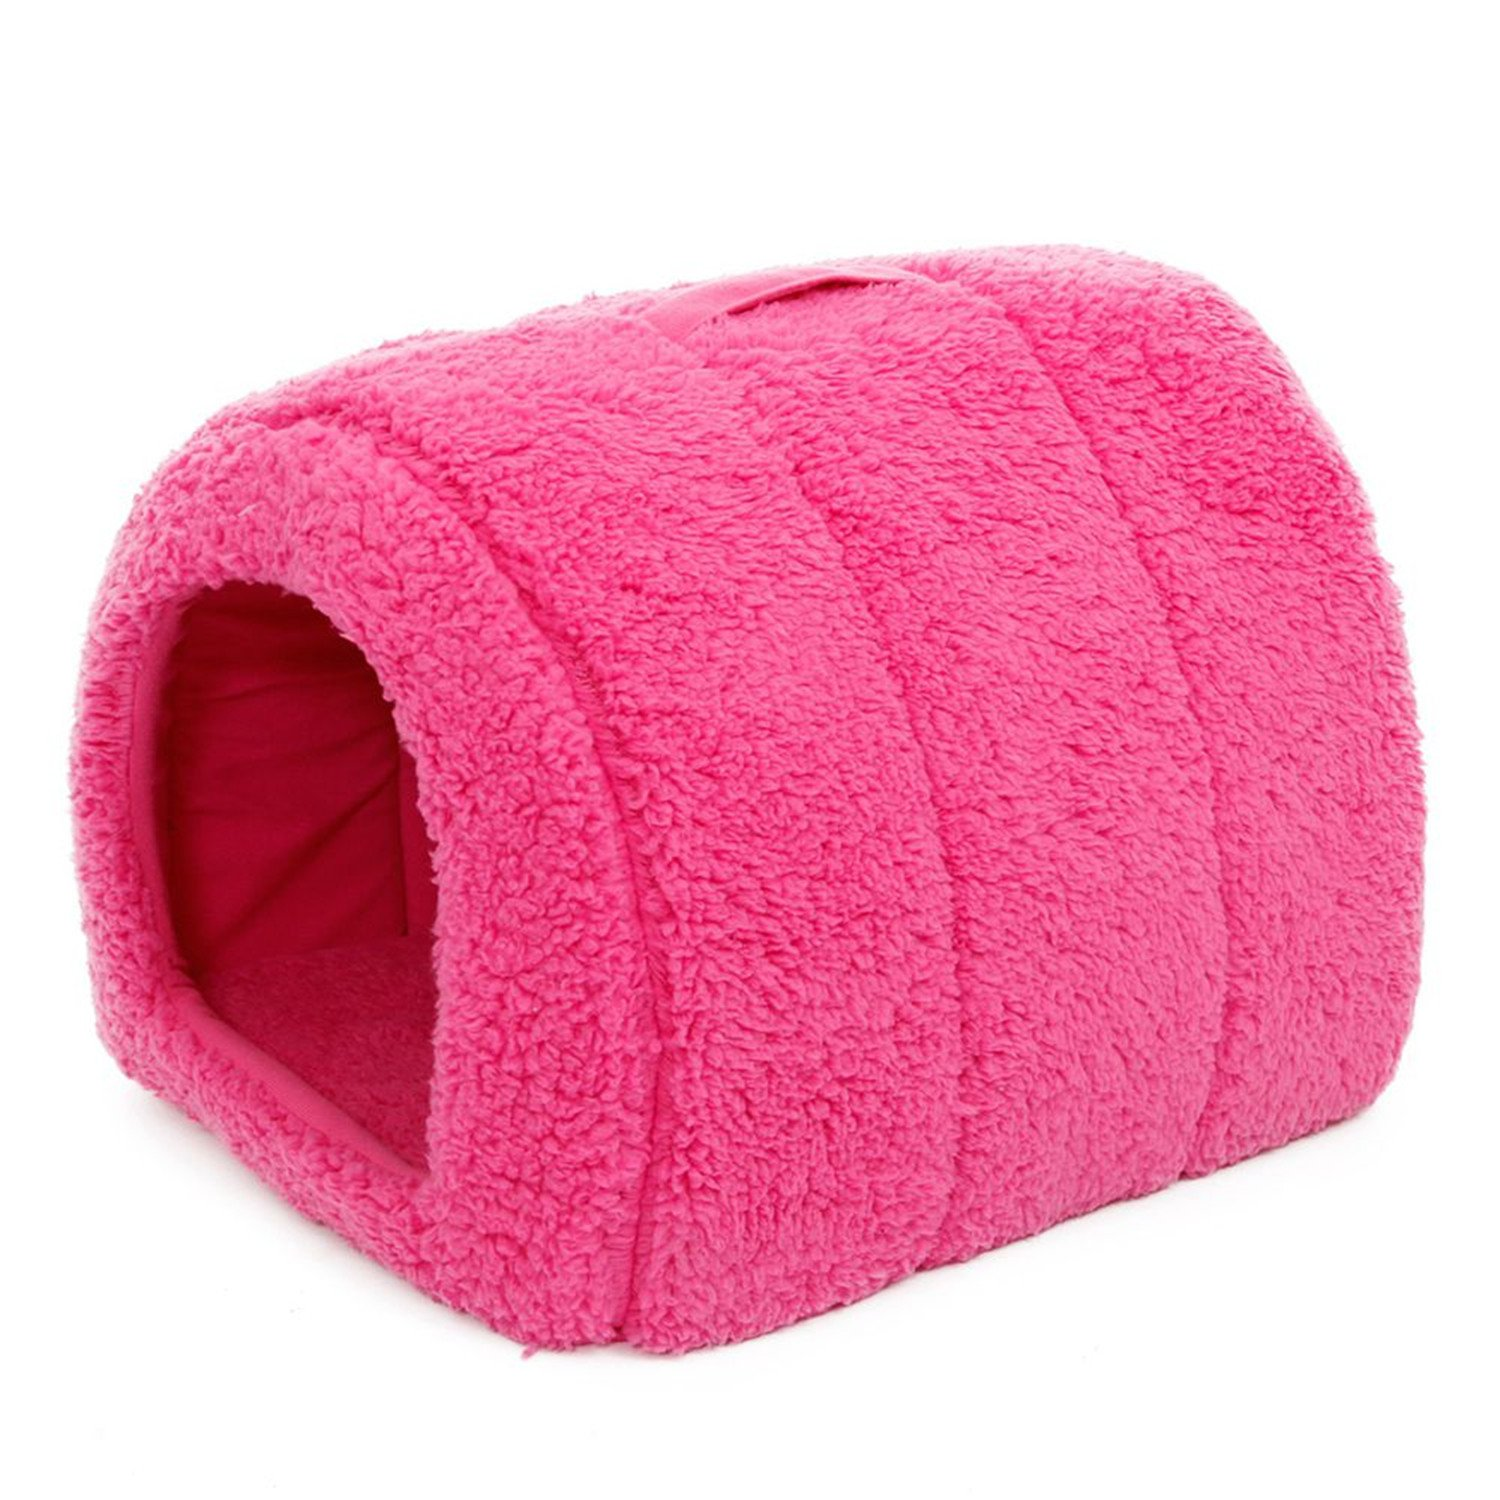 pink red M pink red M Leroyca Cat House and Pet Beds 5 colors Beige and Red Purple Khaki Black with Paw Stripe White with Paw Stripe pink red M